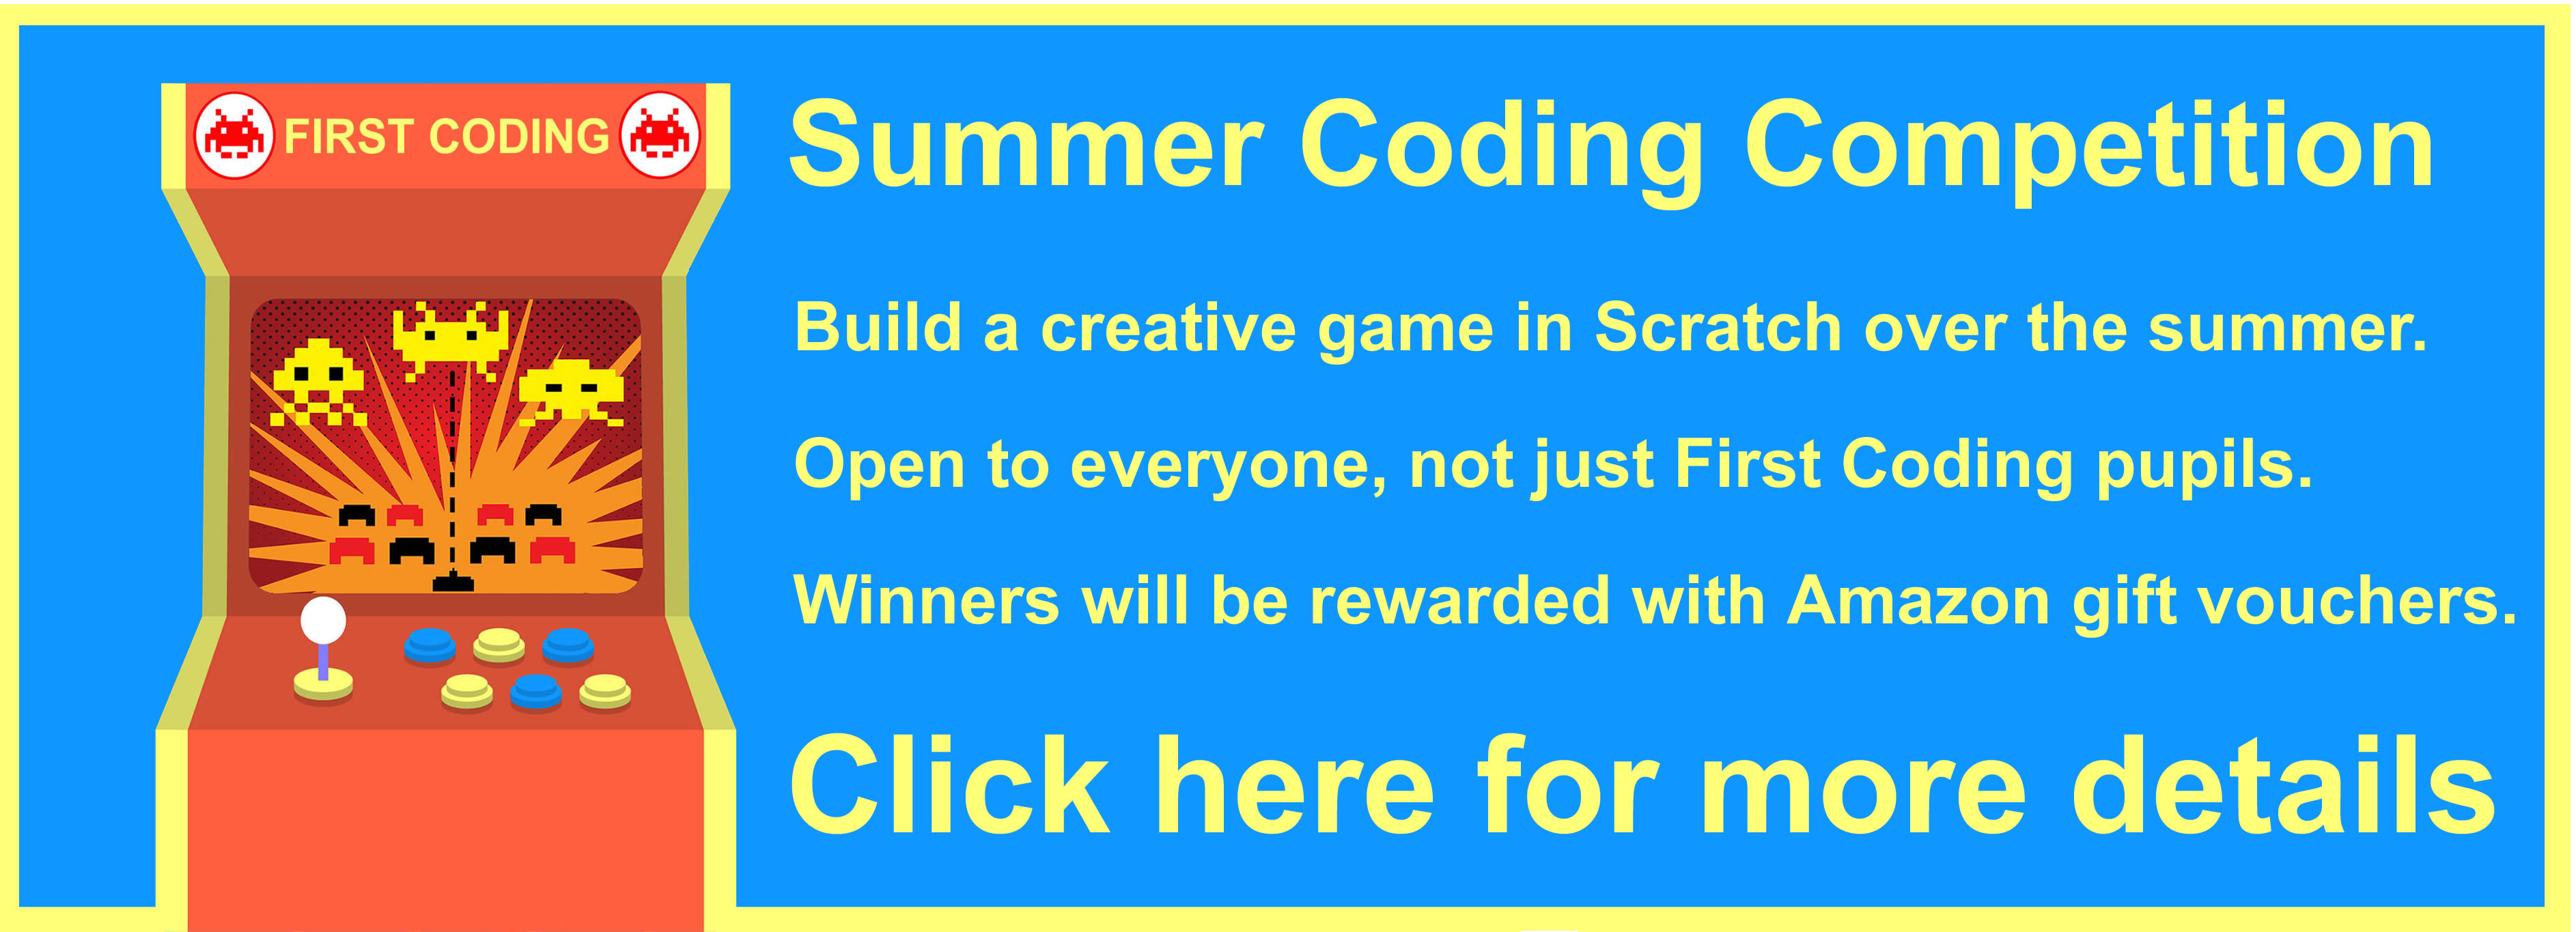 First Coding - Summer Coding Competition